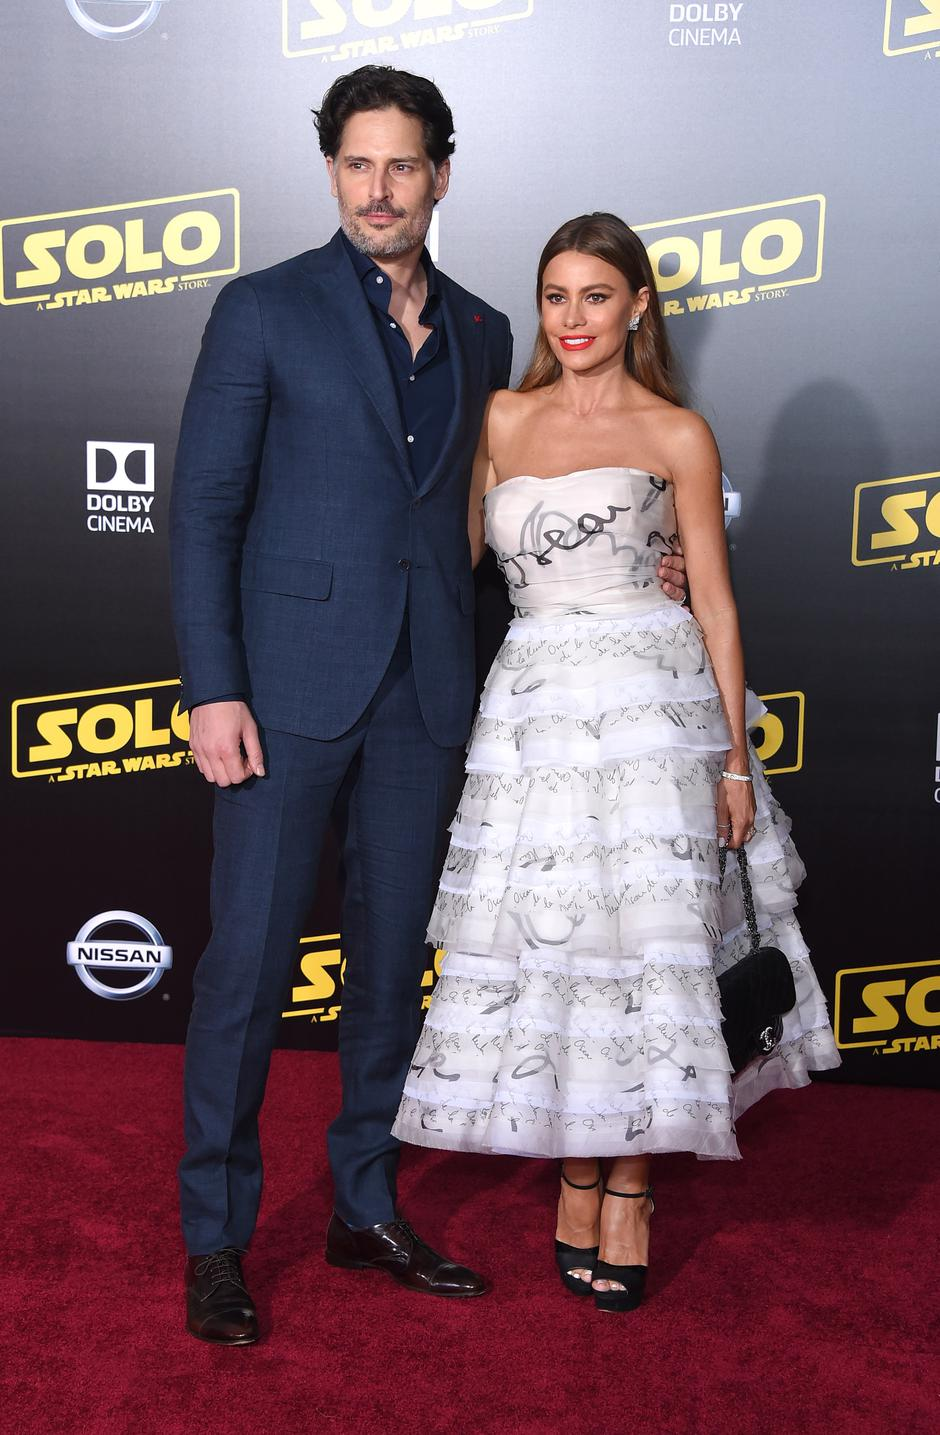 'Solo: A Star War Story' Premiere - Los Angeles | Autor: O'Connor/Press Association/PIXSELL